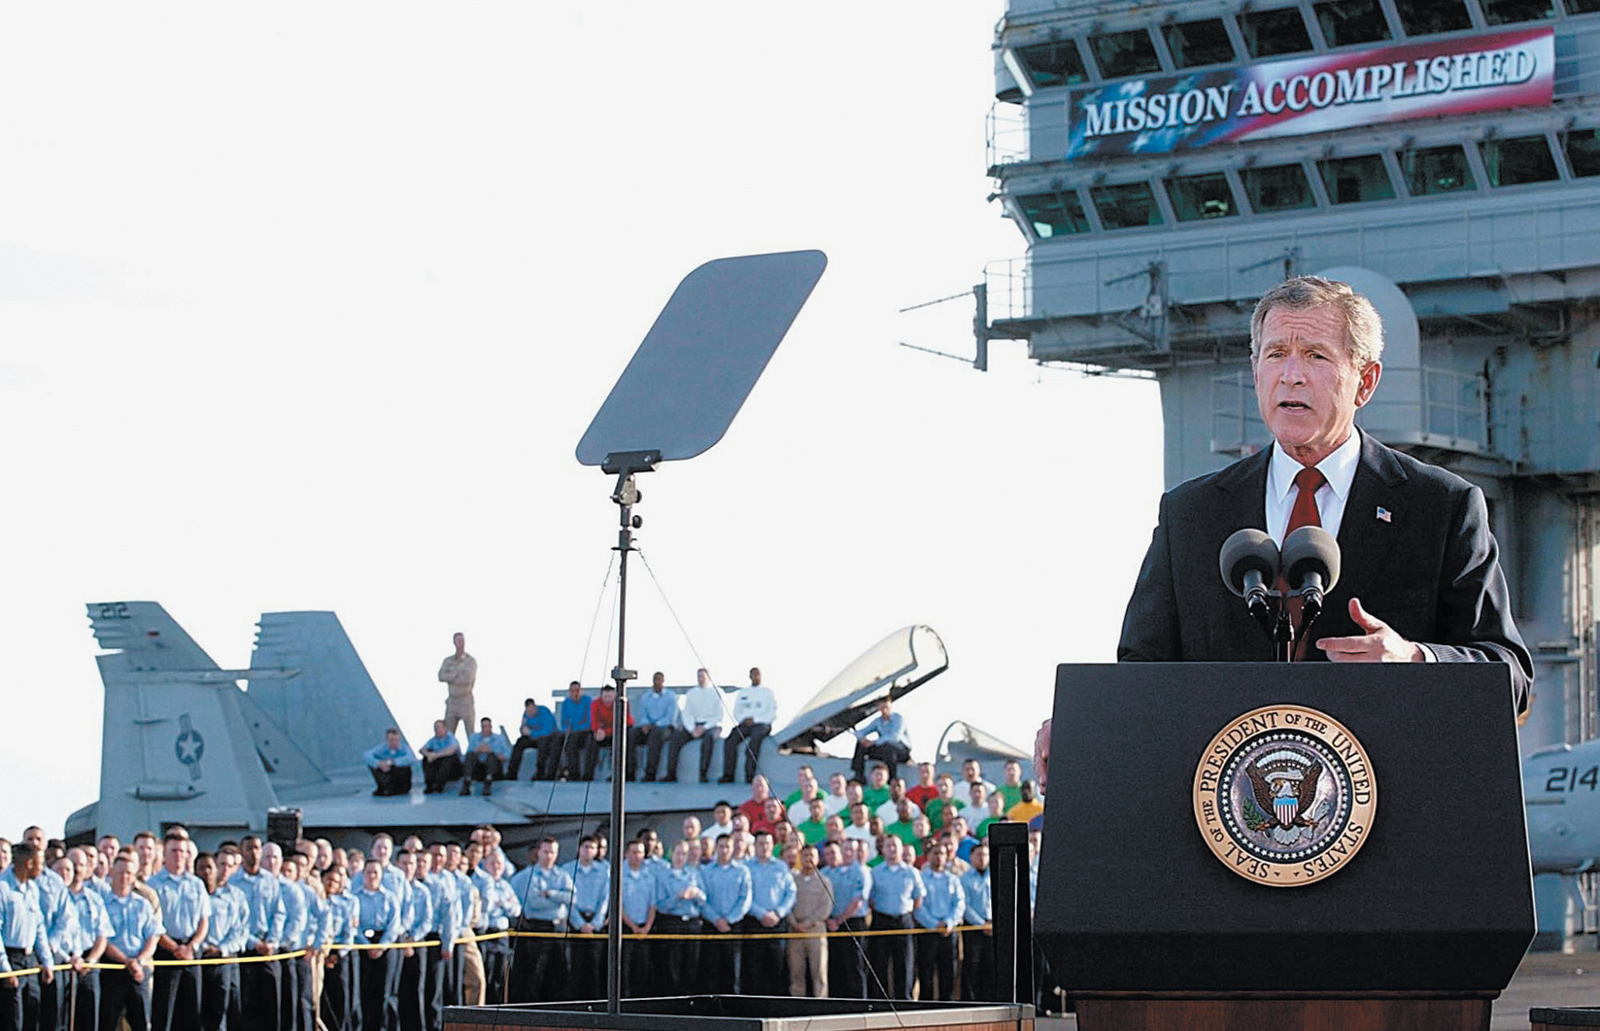 George W. Bush on the deck of the USS Abraham Lincoln, declaring the end of major fighting in Iraq, May 2003